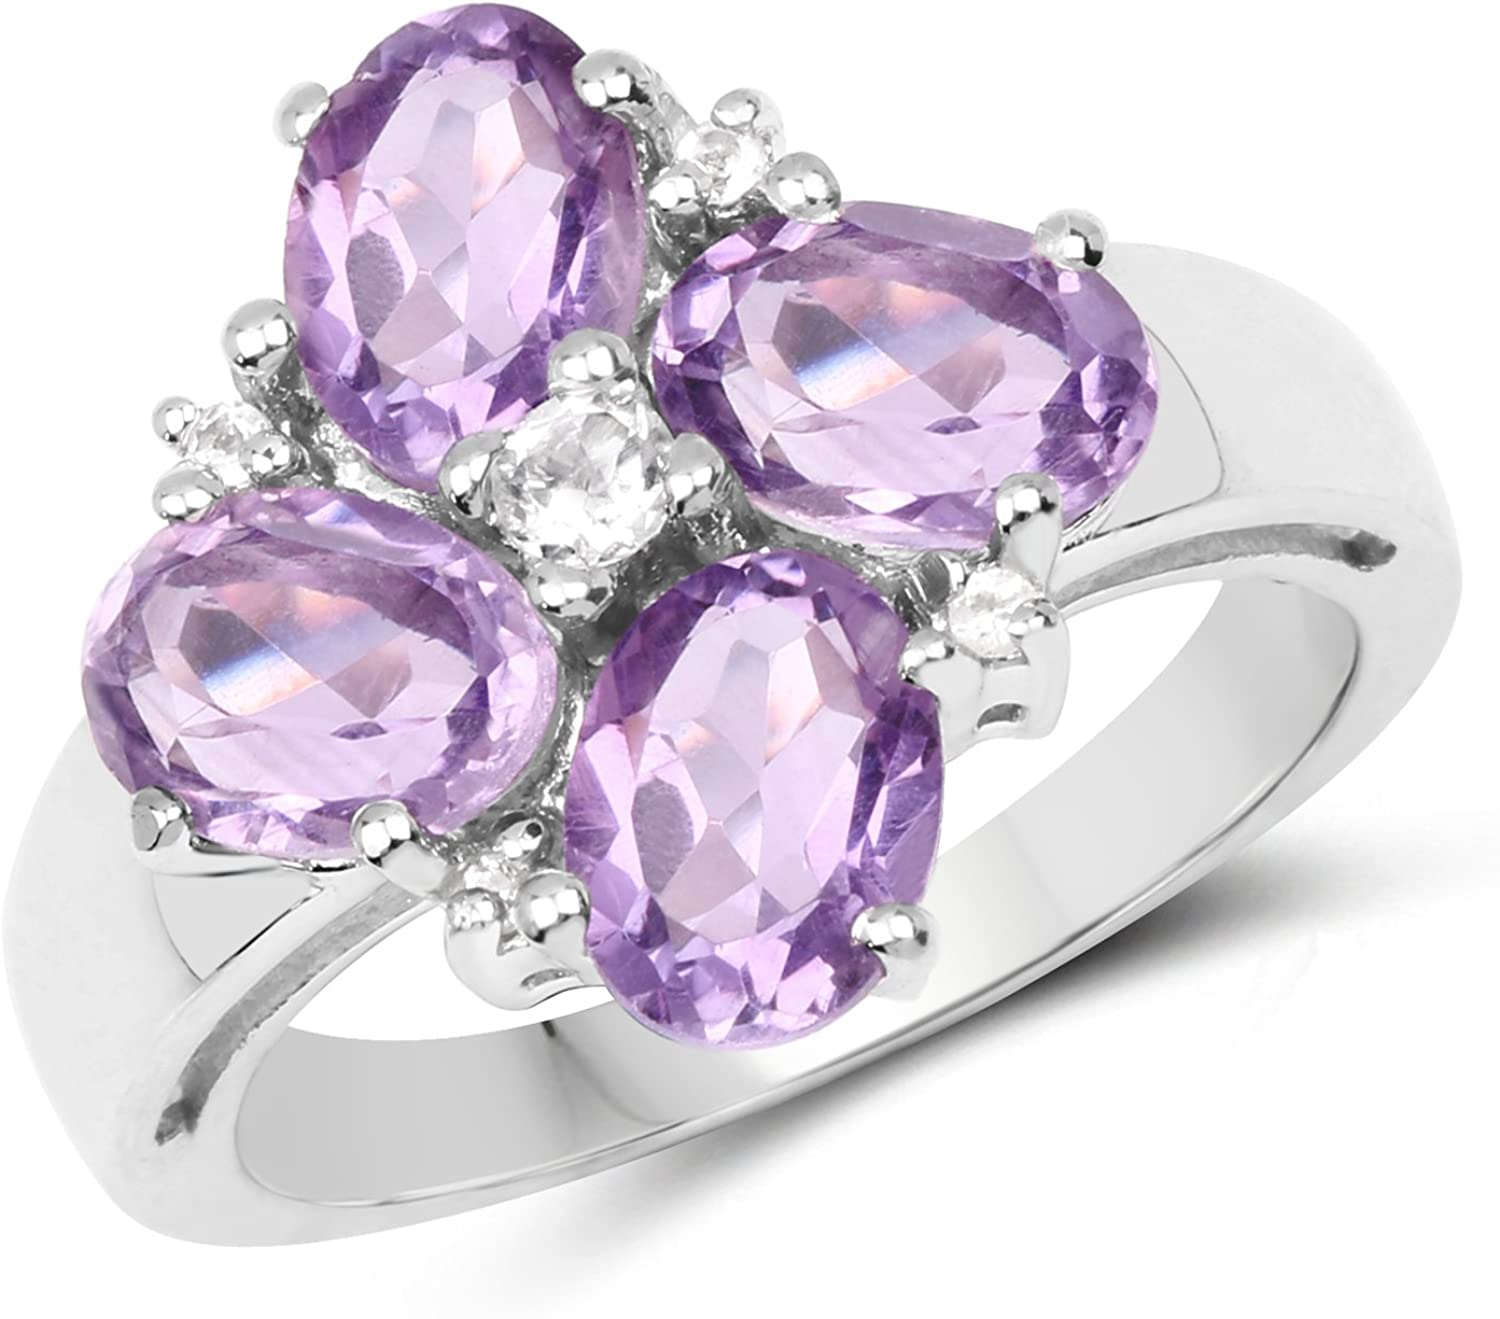 Oval Amethyst and White Topaz Cluster Ring 925 Sterling Silver Jewelry